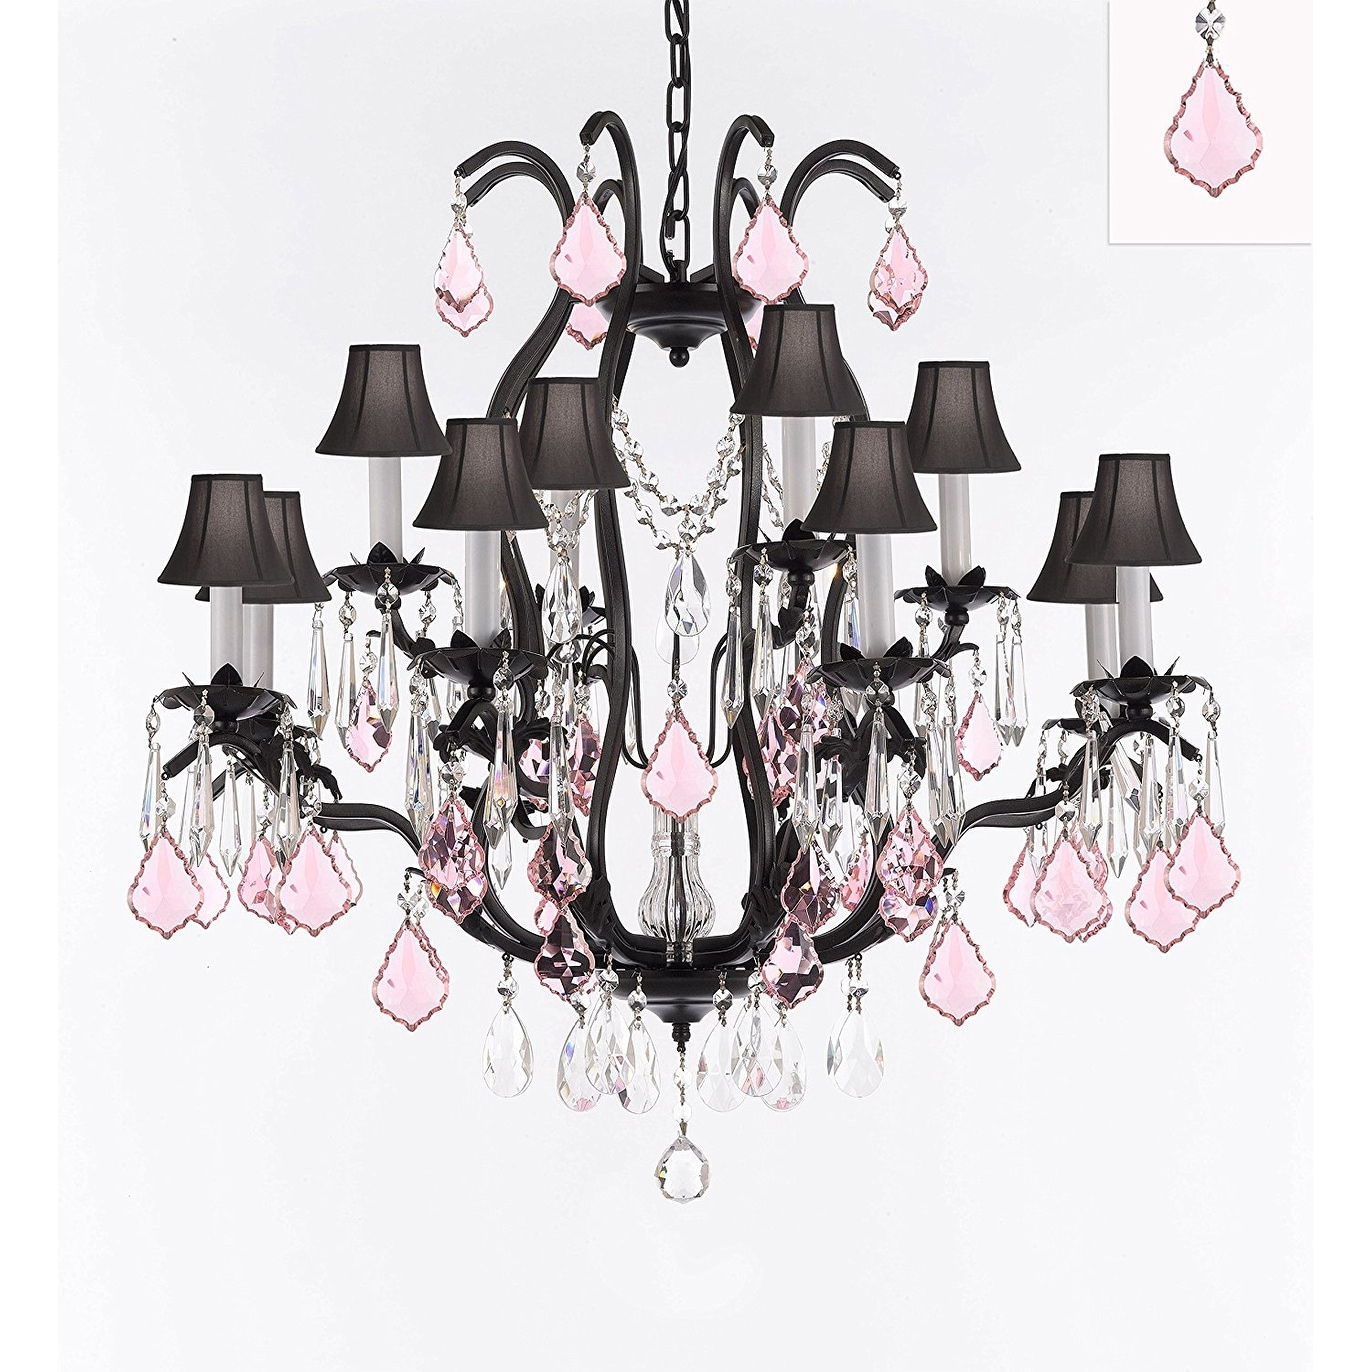 Black Wrought Iron Kitchen Light Fixtures Wrought Iron Crystal Chandelier With Pink Crystals Black Shades